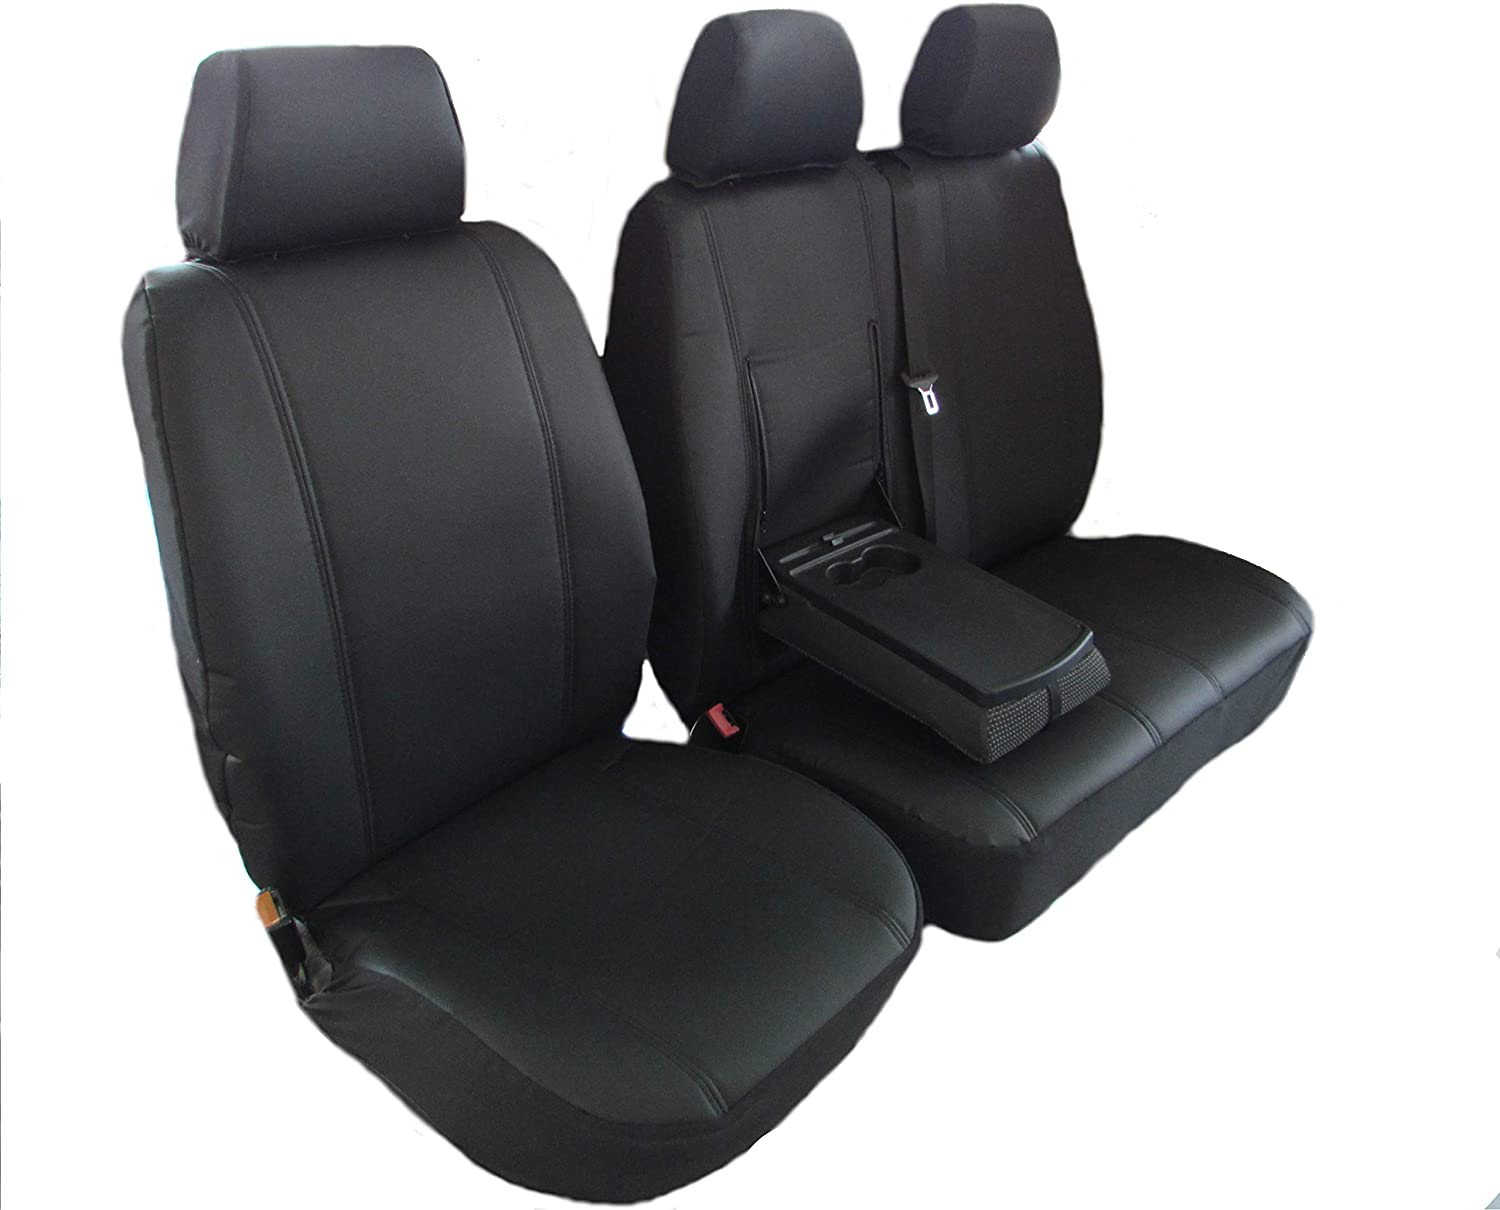 06 on CITROEN Relay GREY HEAVY DUTY VAN SEAT COVERS SINGLE DRIVERS AND DOUBLE PASSENGERS SEAT COVERS SET